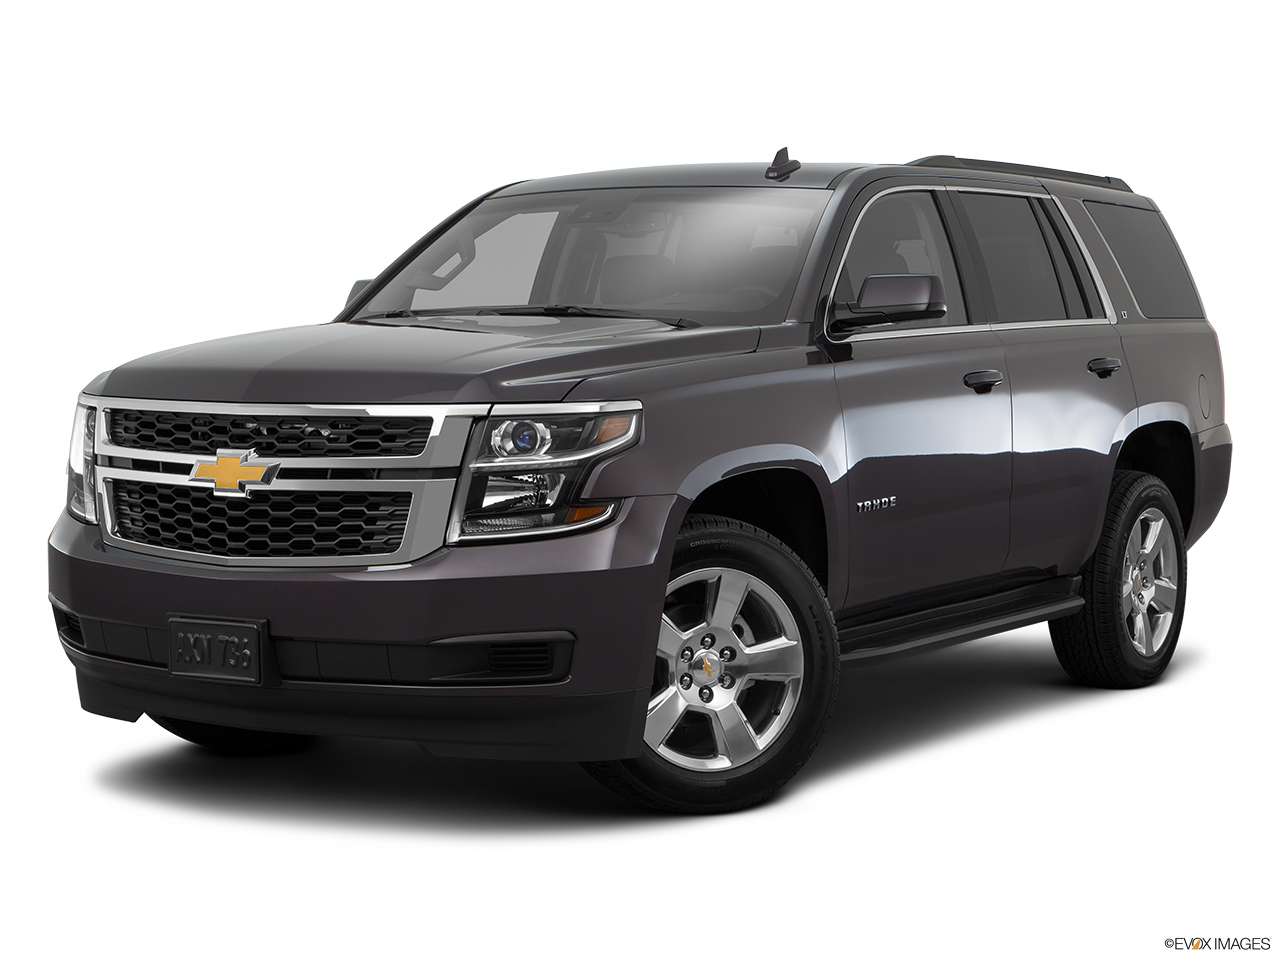 Car Pictures List for Chevrolet Tahoe 2018 LT 4WD (Egypt ...